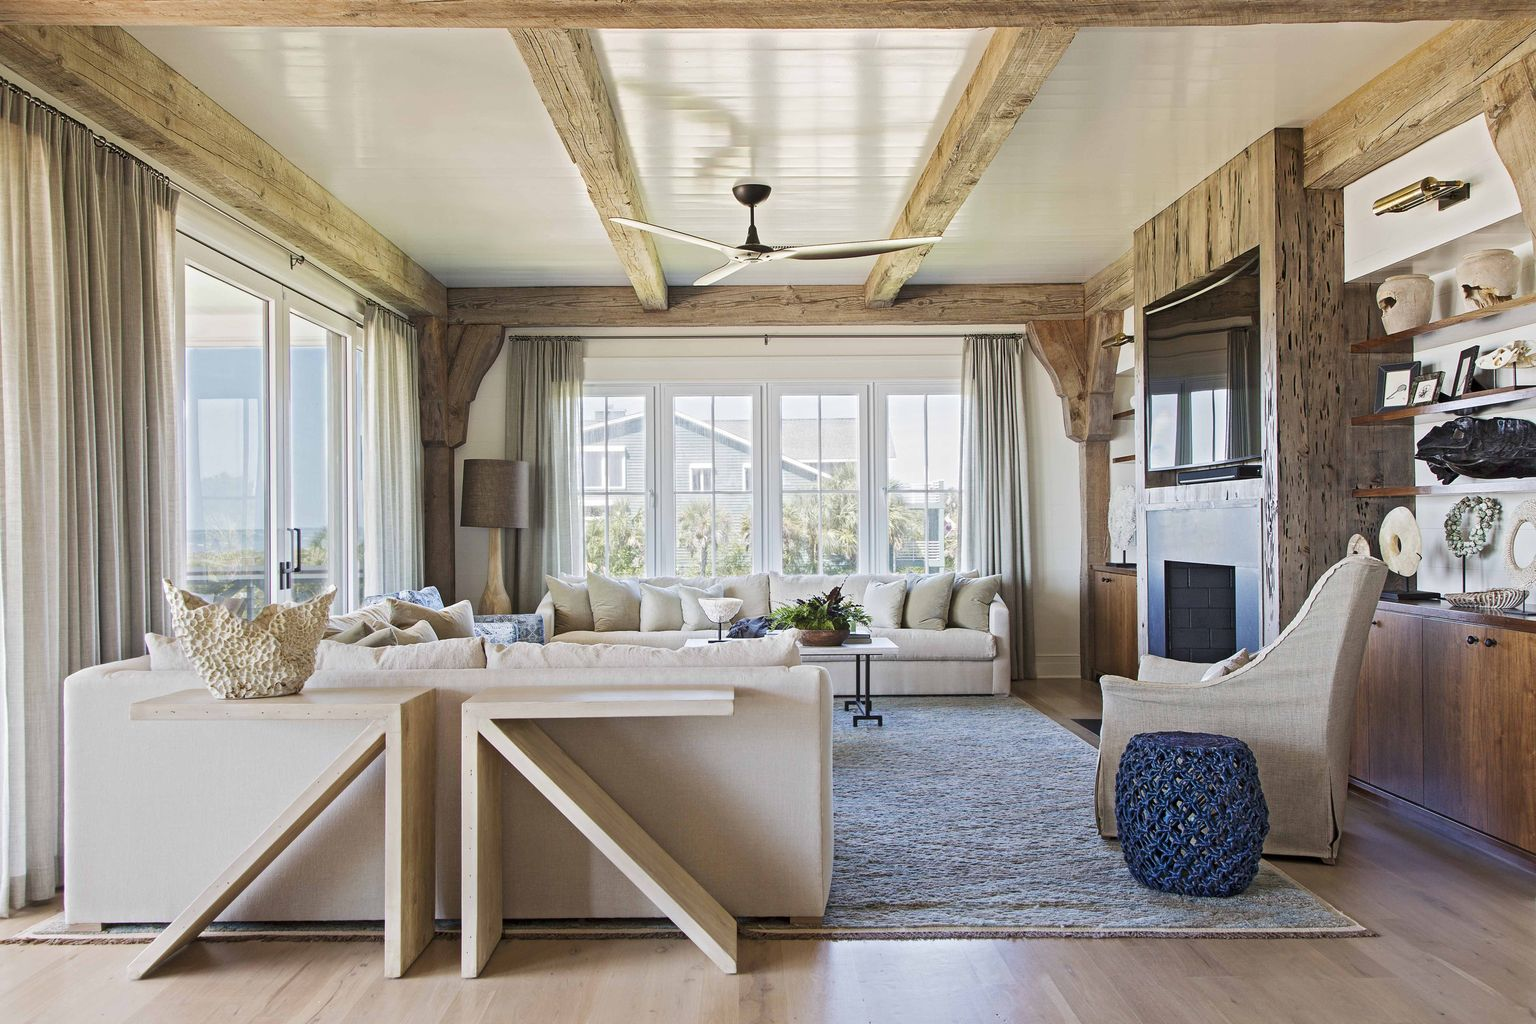 Isle of palms oasis herlong architects architecture - Modern beach house interiors ...